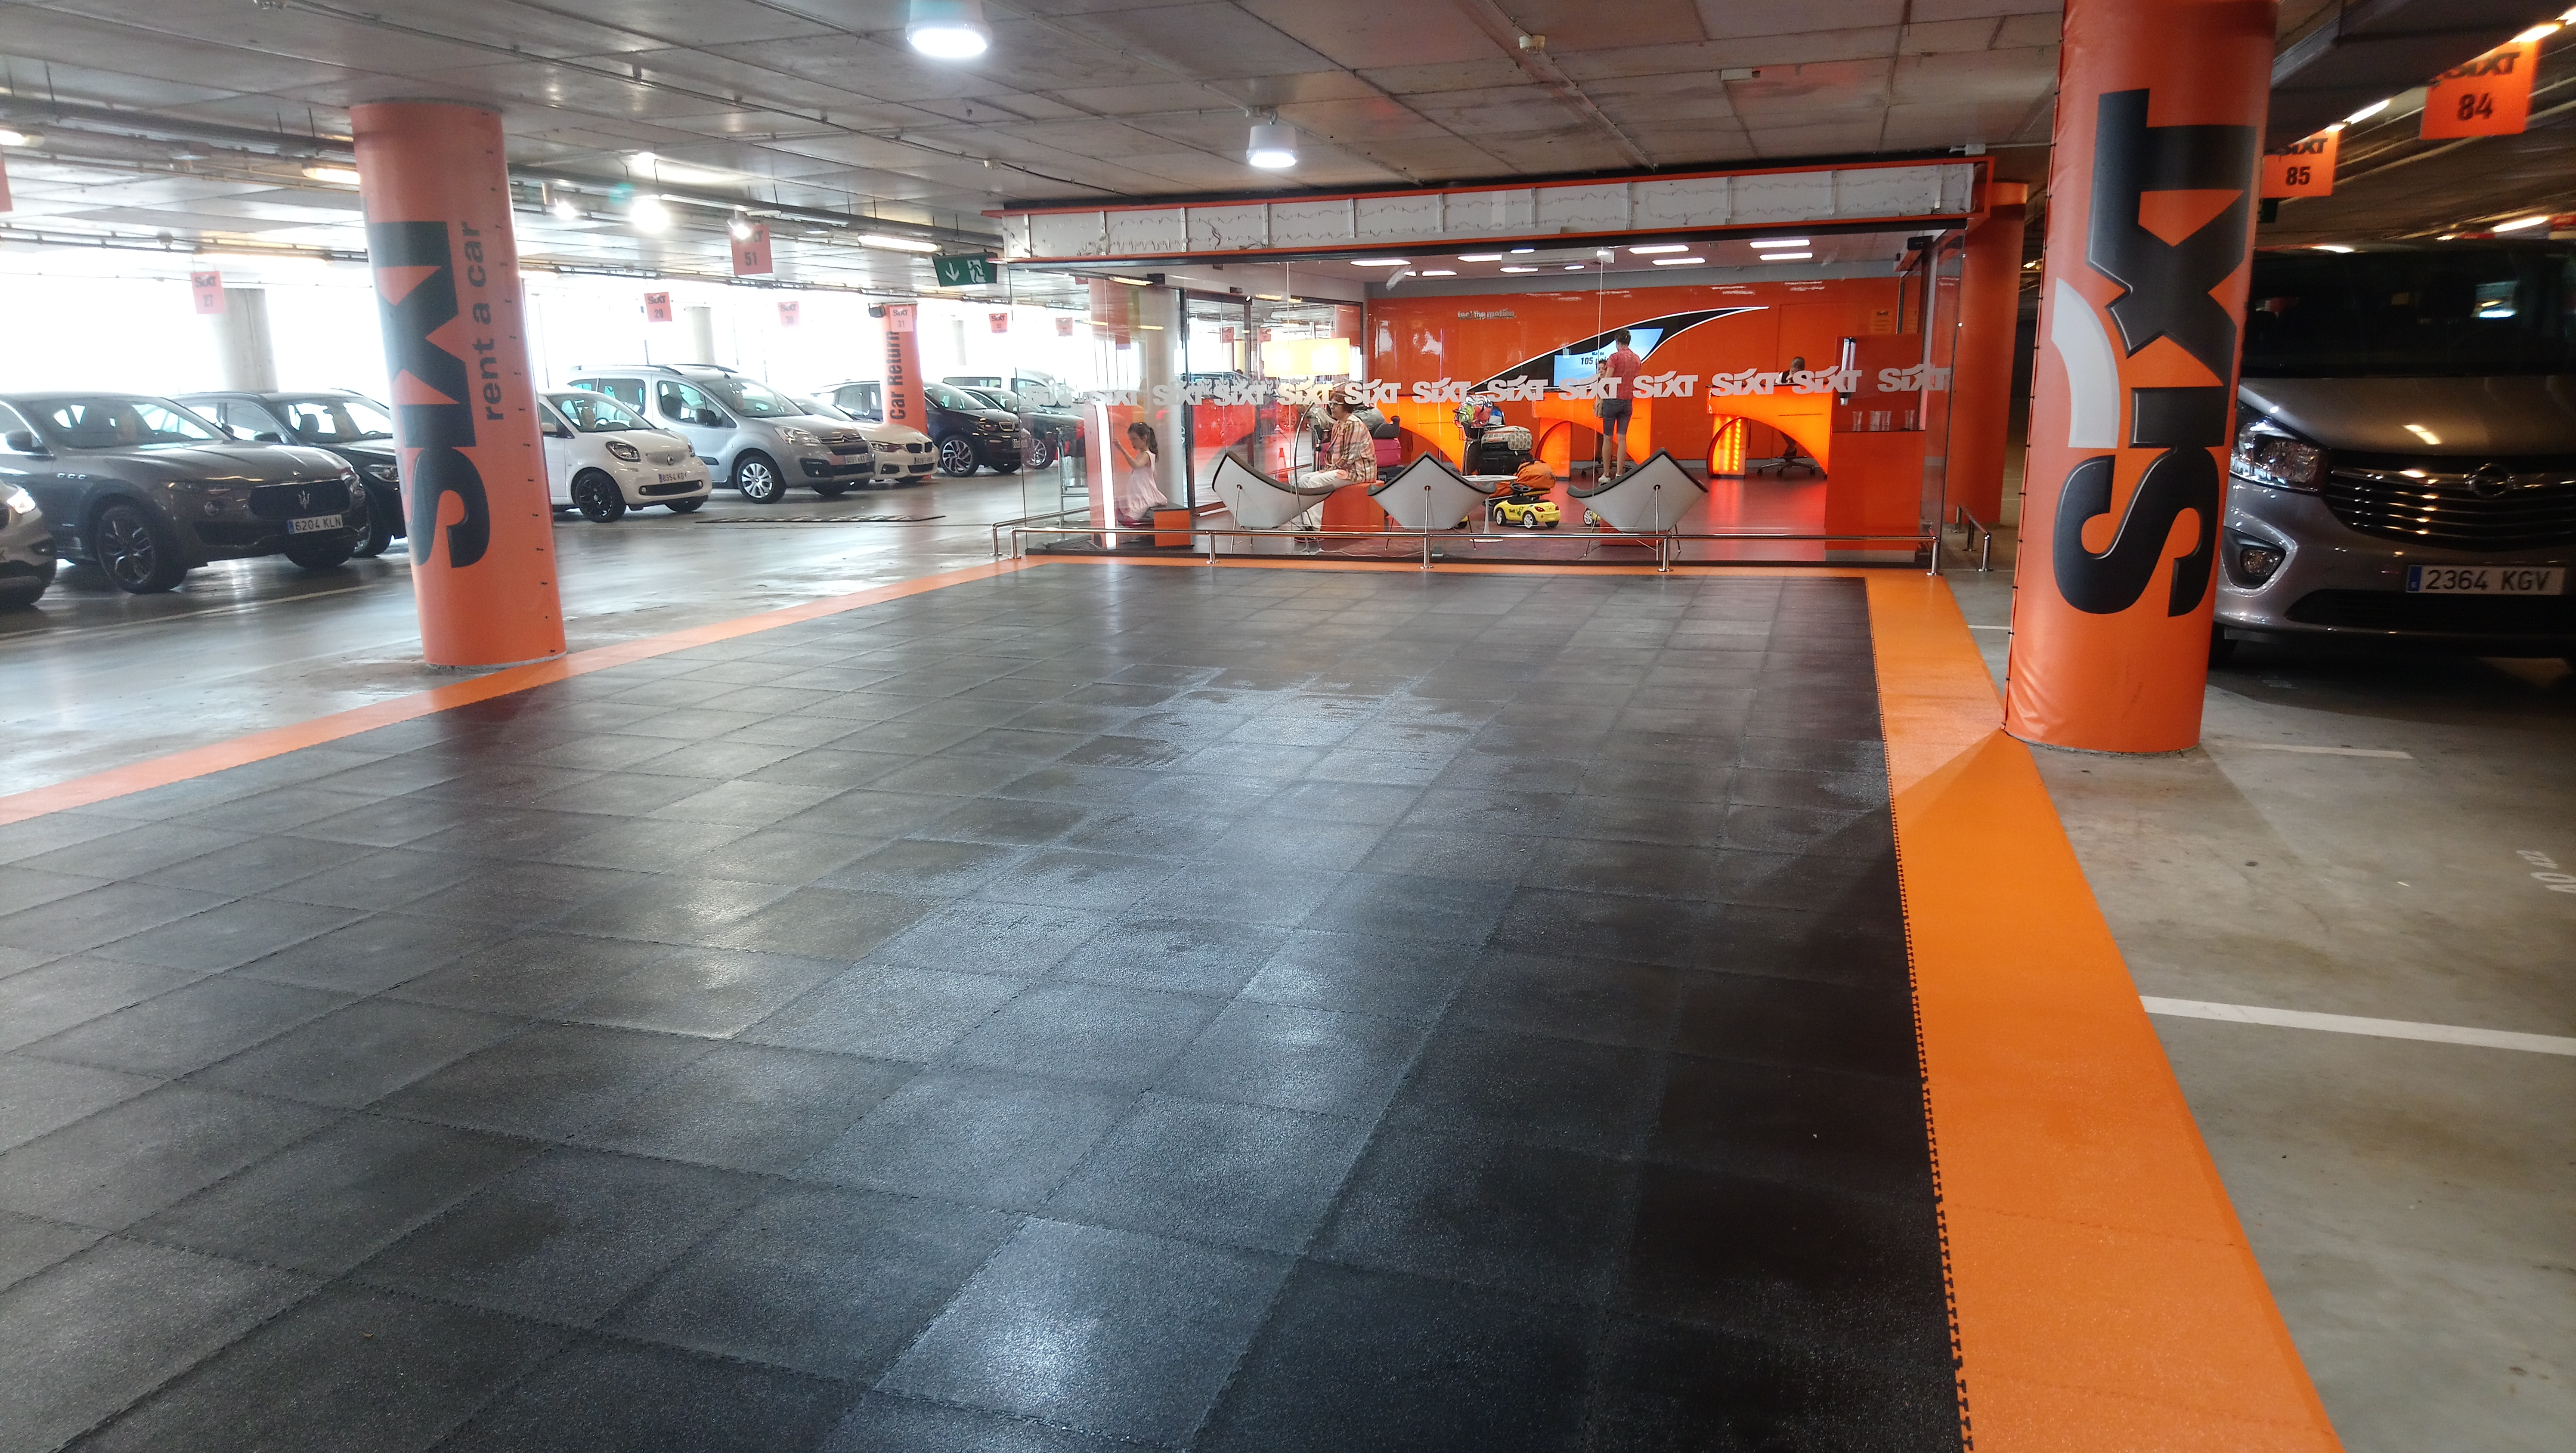 sixt t1 parking reforma 9